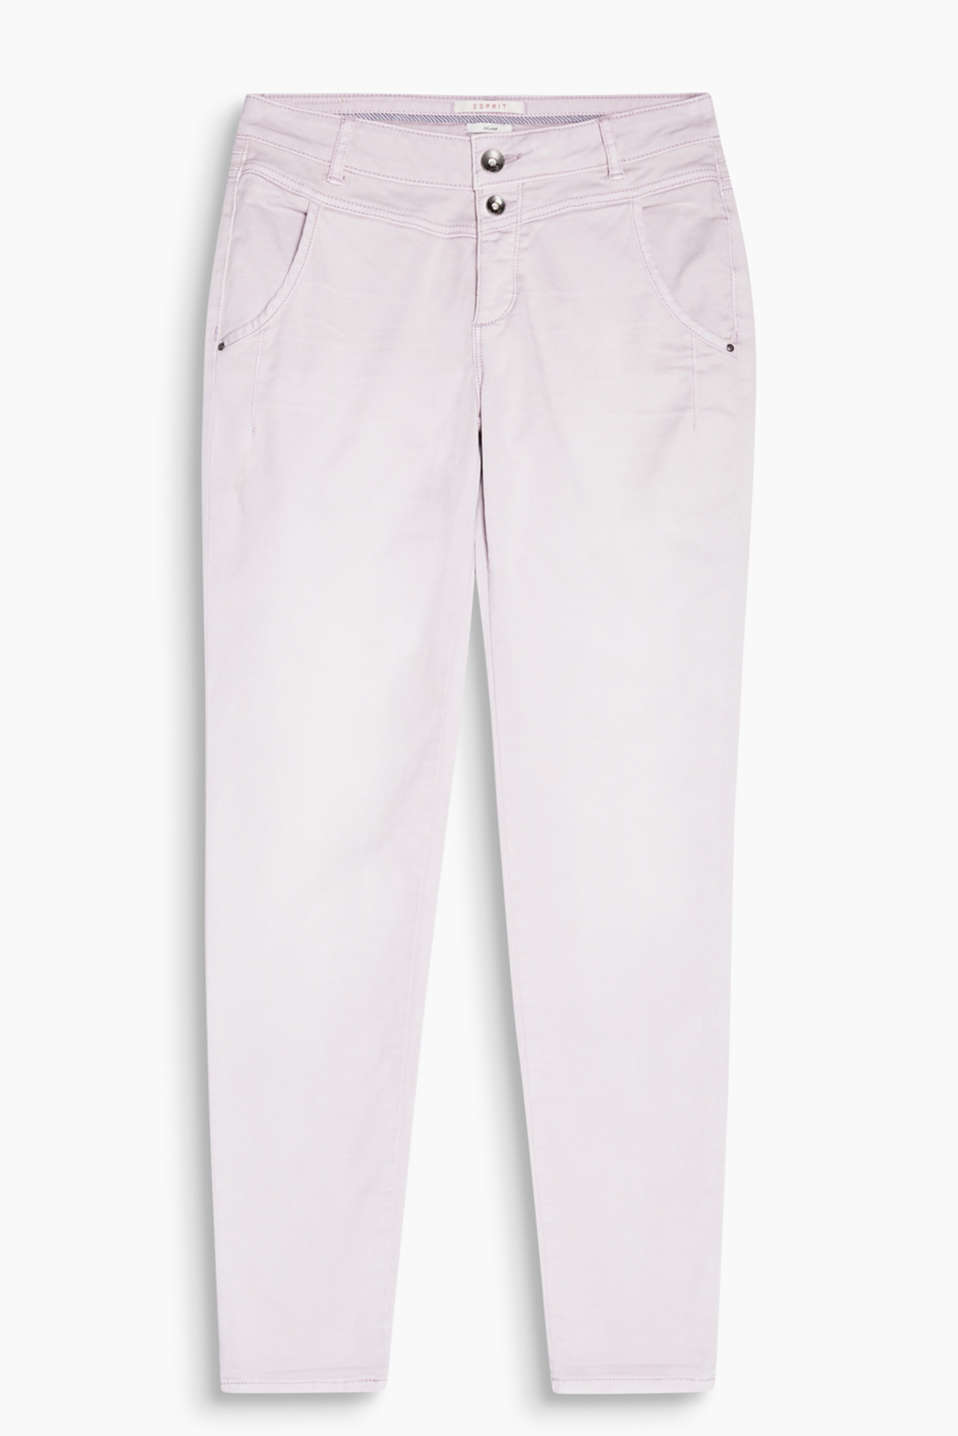 Stretch chinos with a yoke and button placket